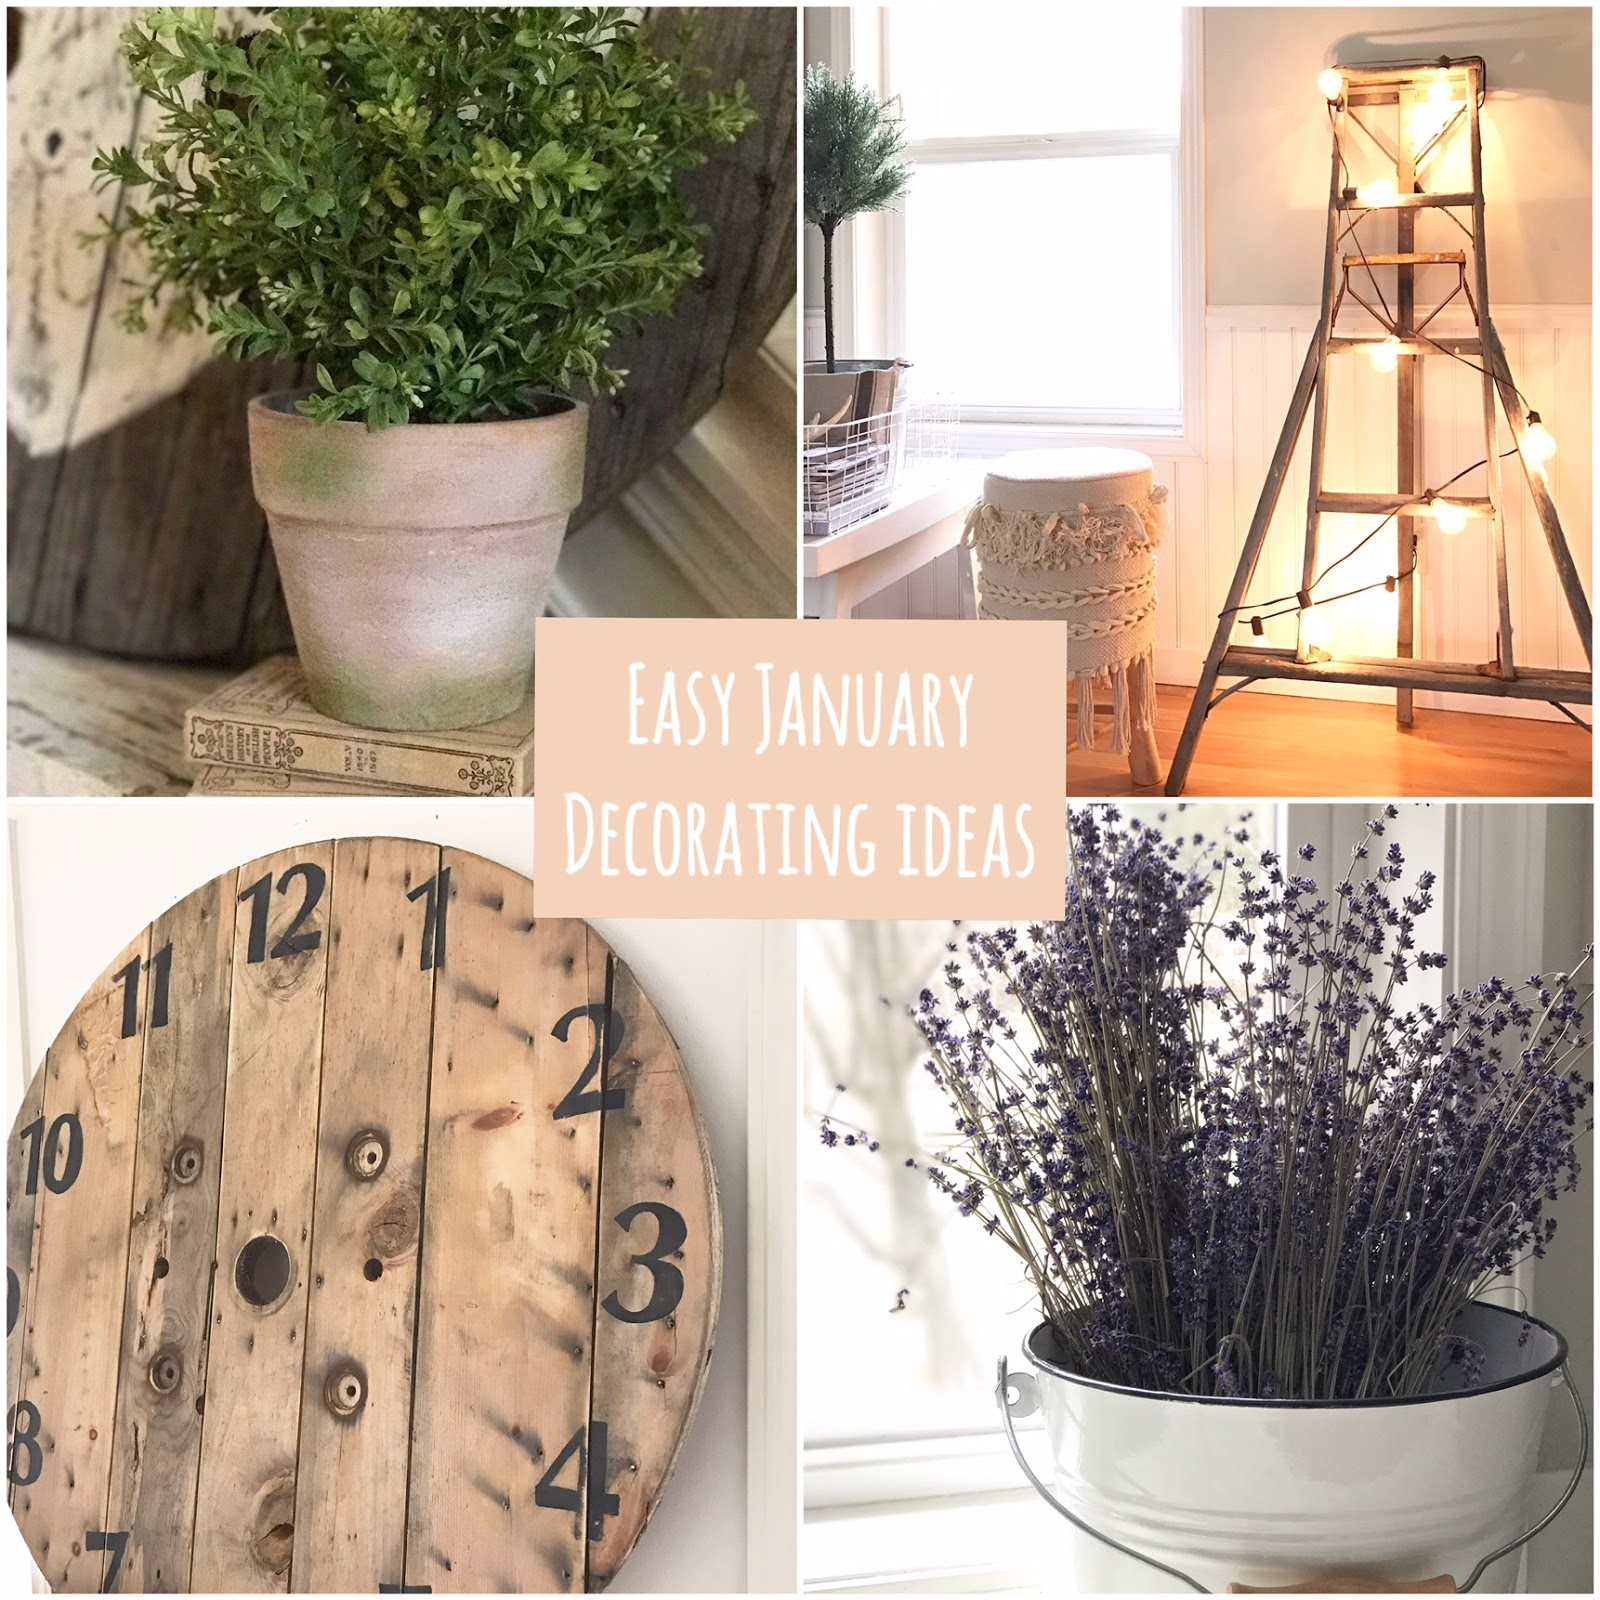 Little Farmstead  Four Easy January Home Decorating Ideas  Farmhouse     Let there be lights  and ladders